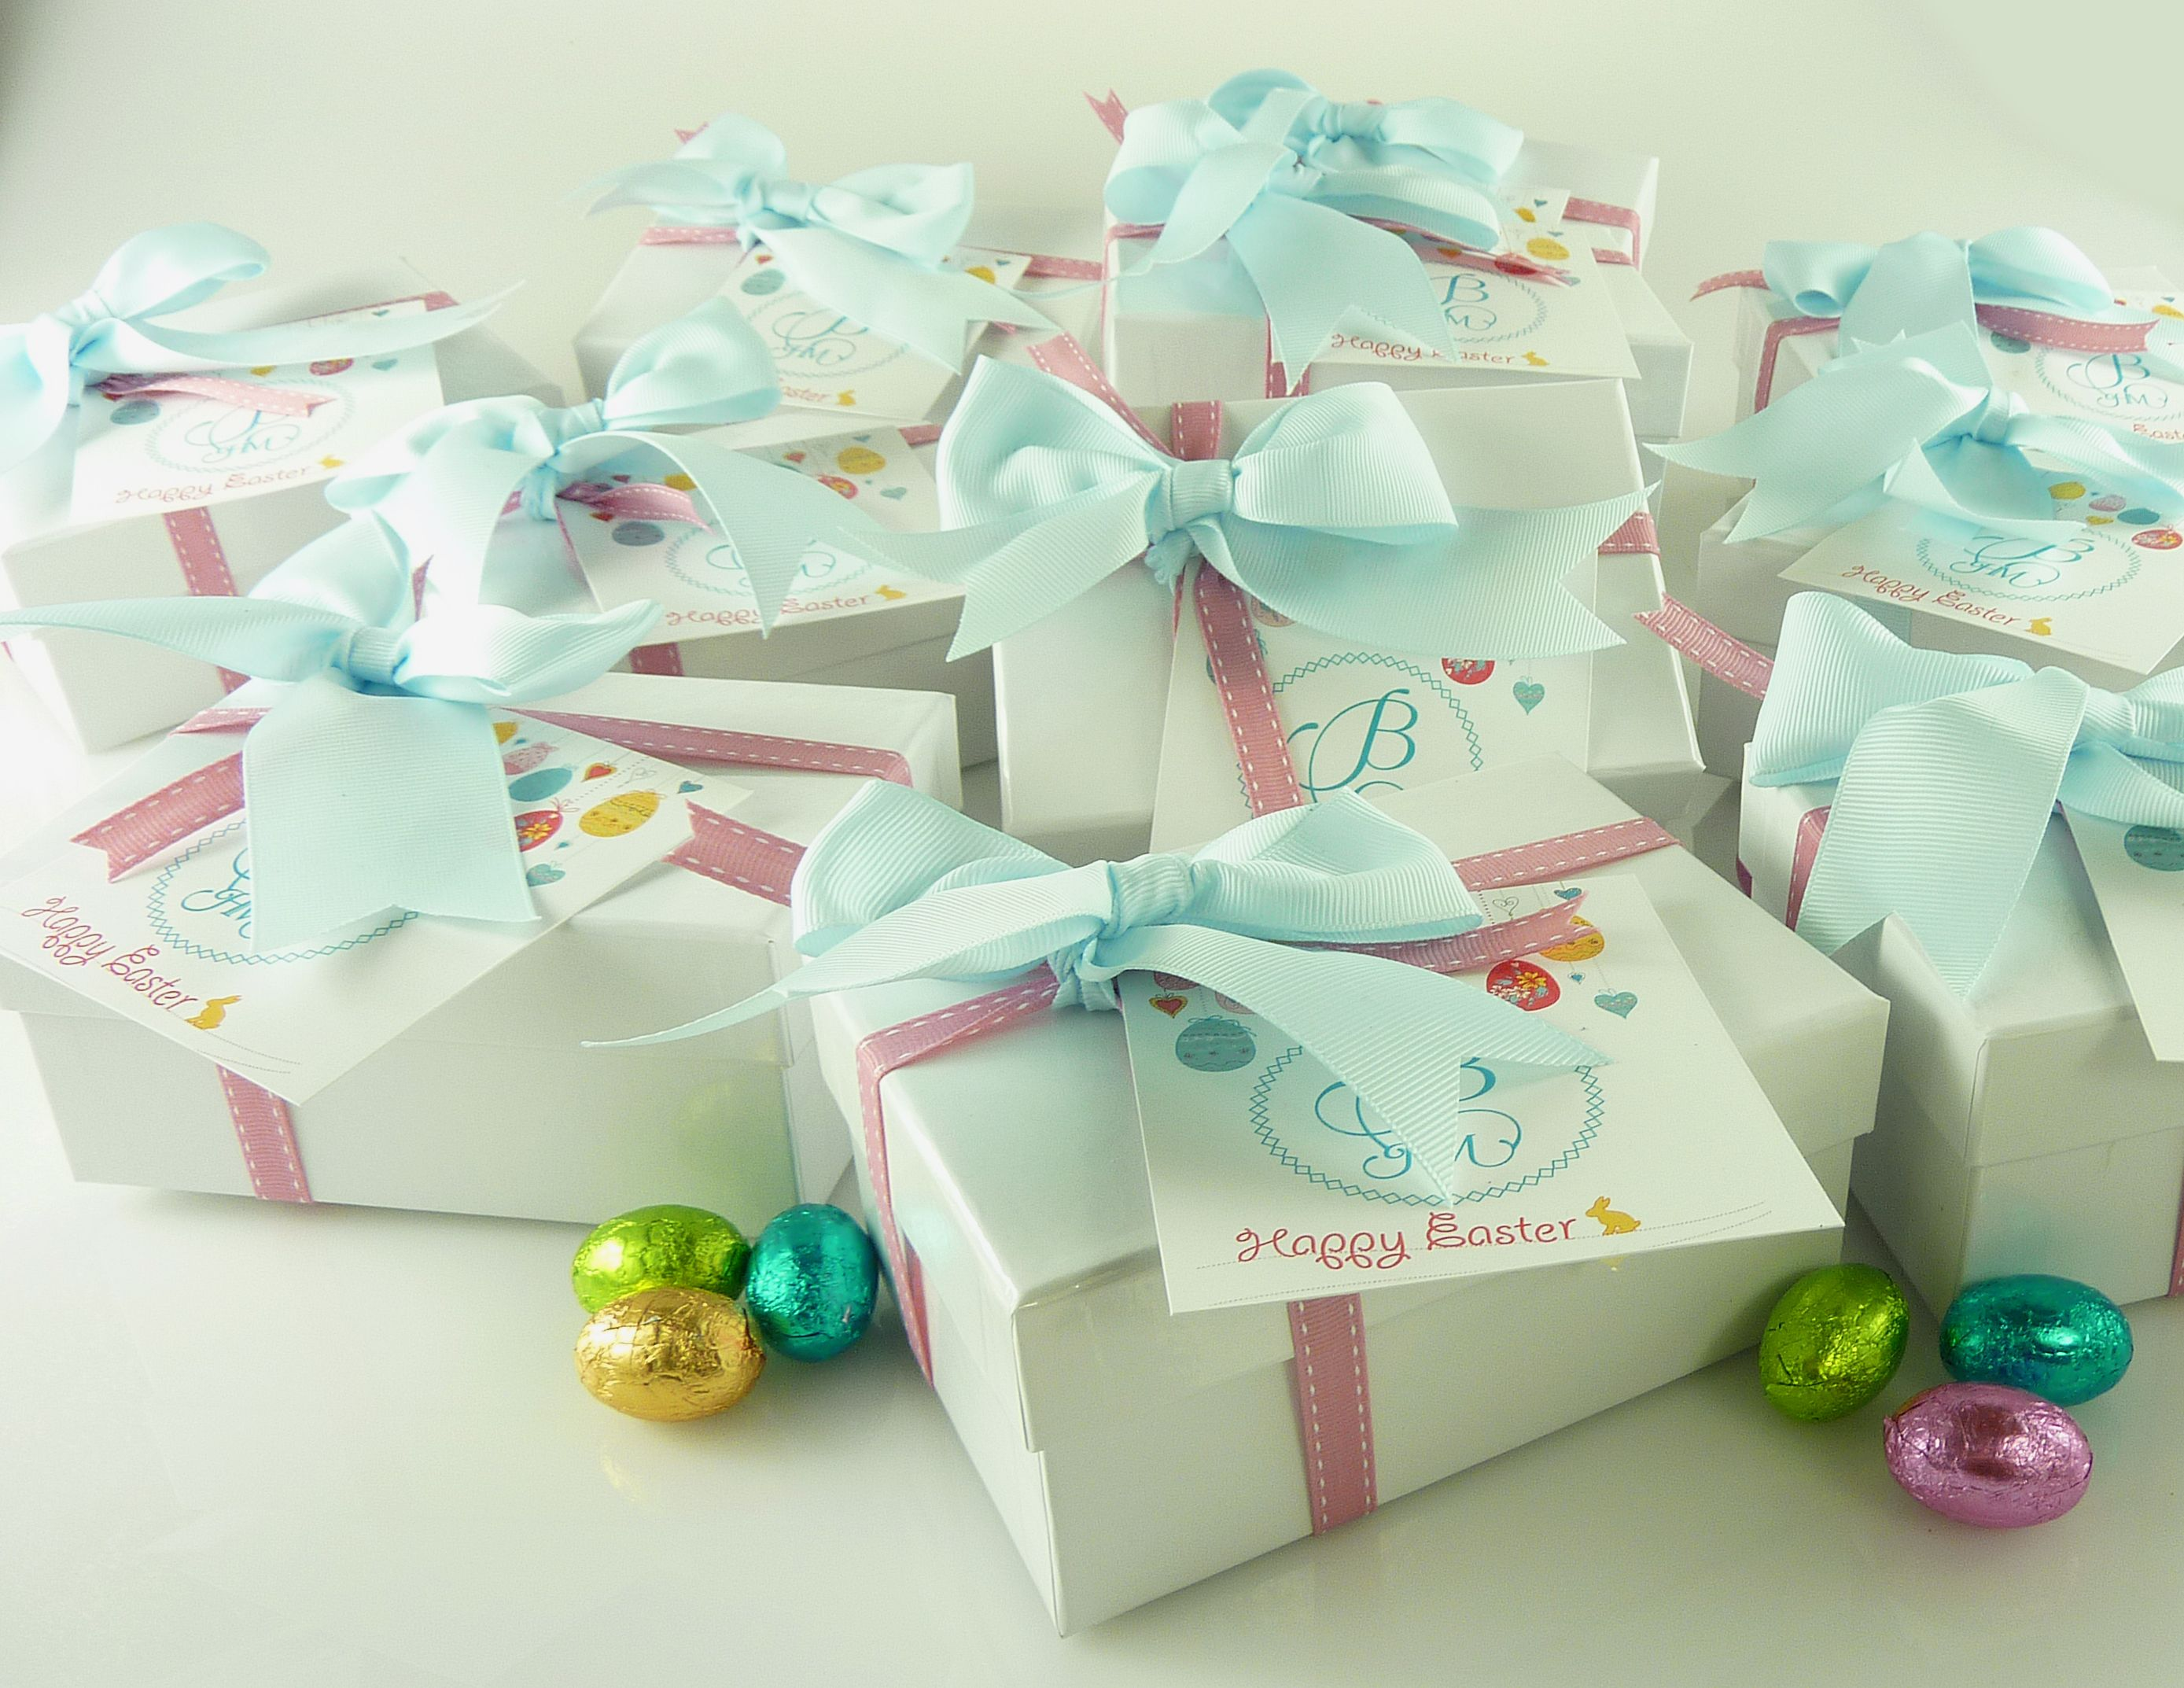 Easter gifts for bliss home management corporate gift wrap easter gifts for bliss home management negle Choice Image